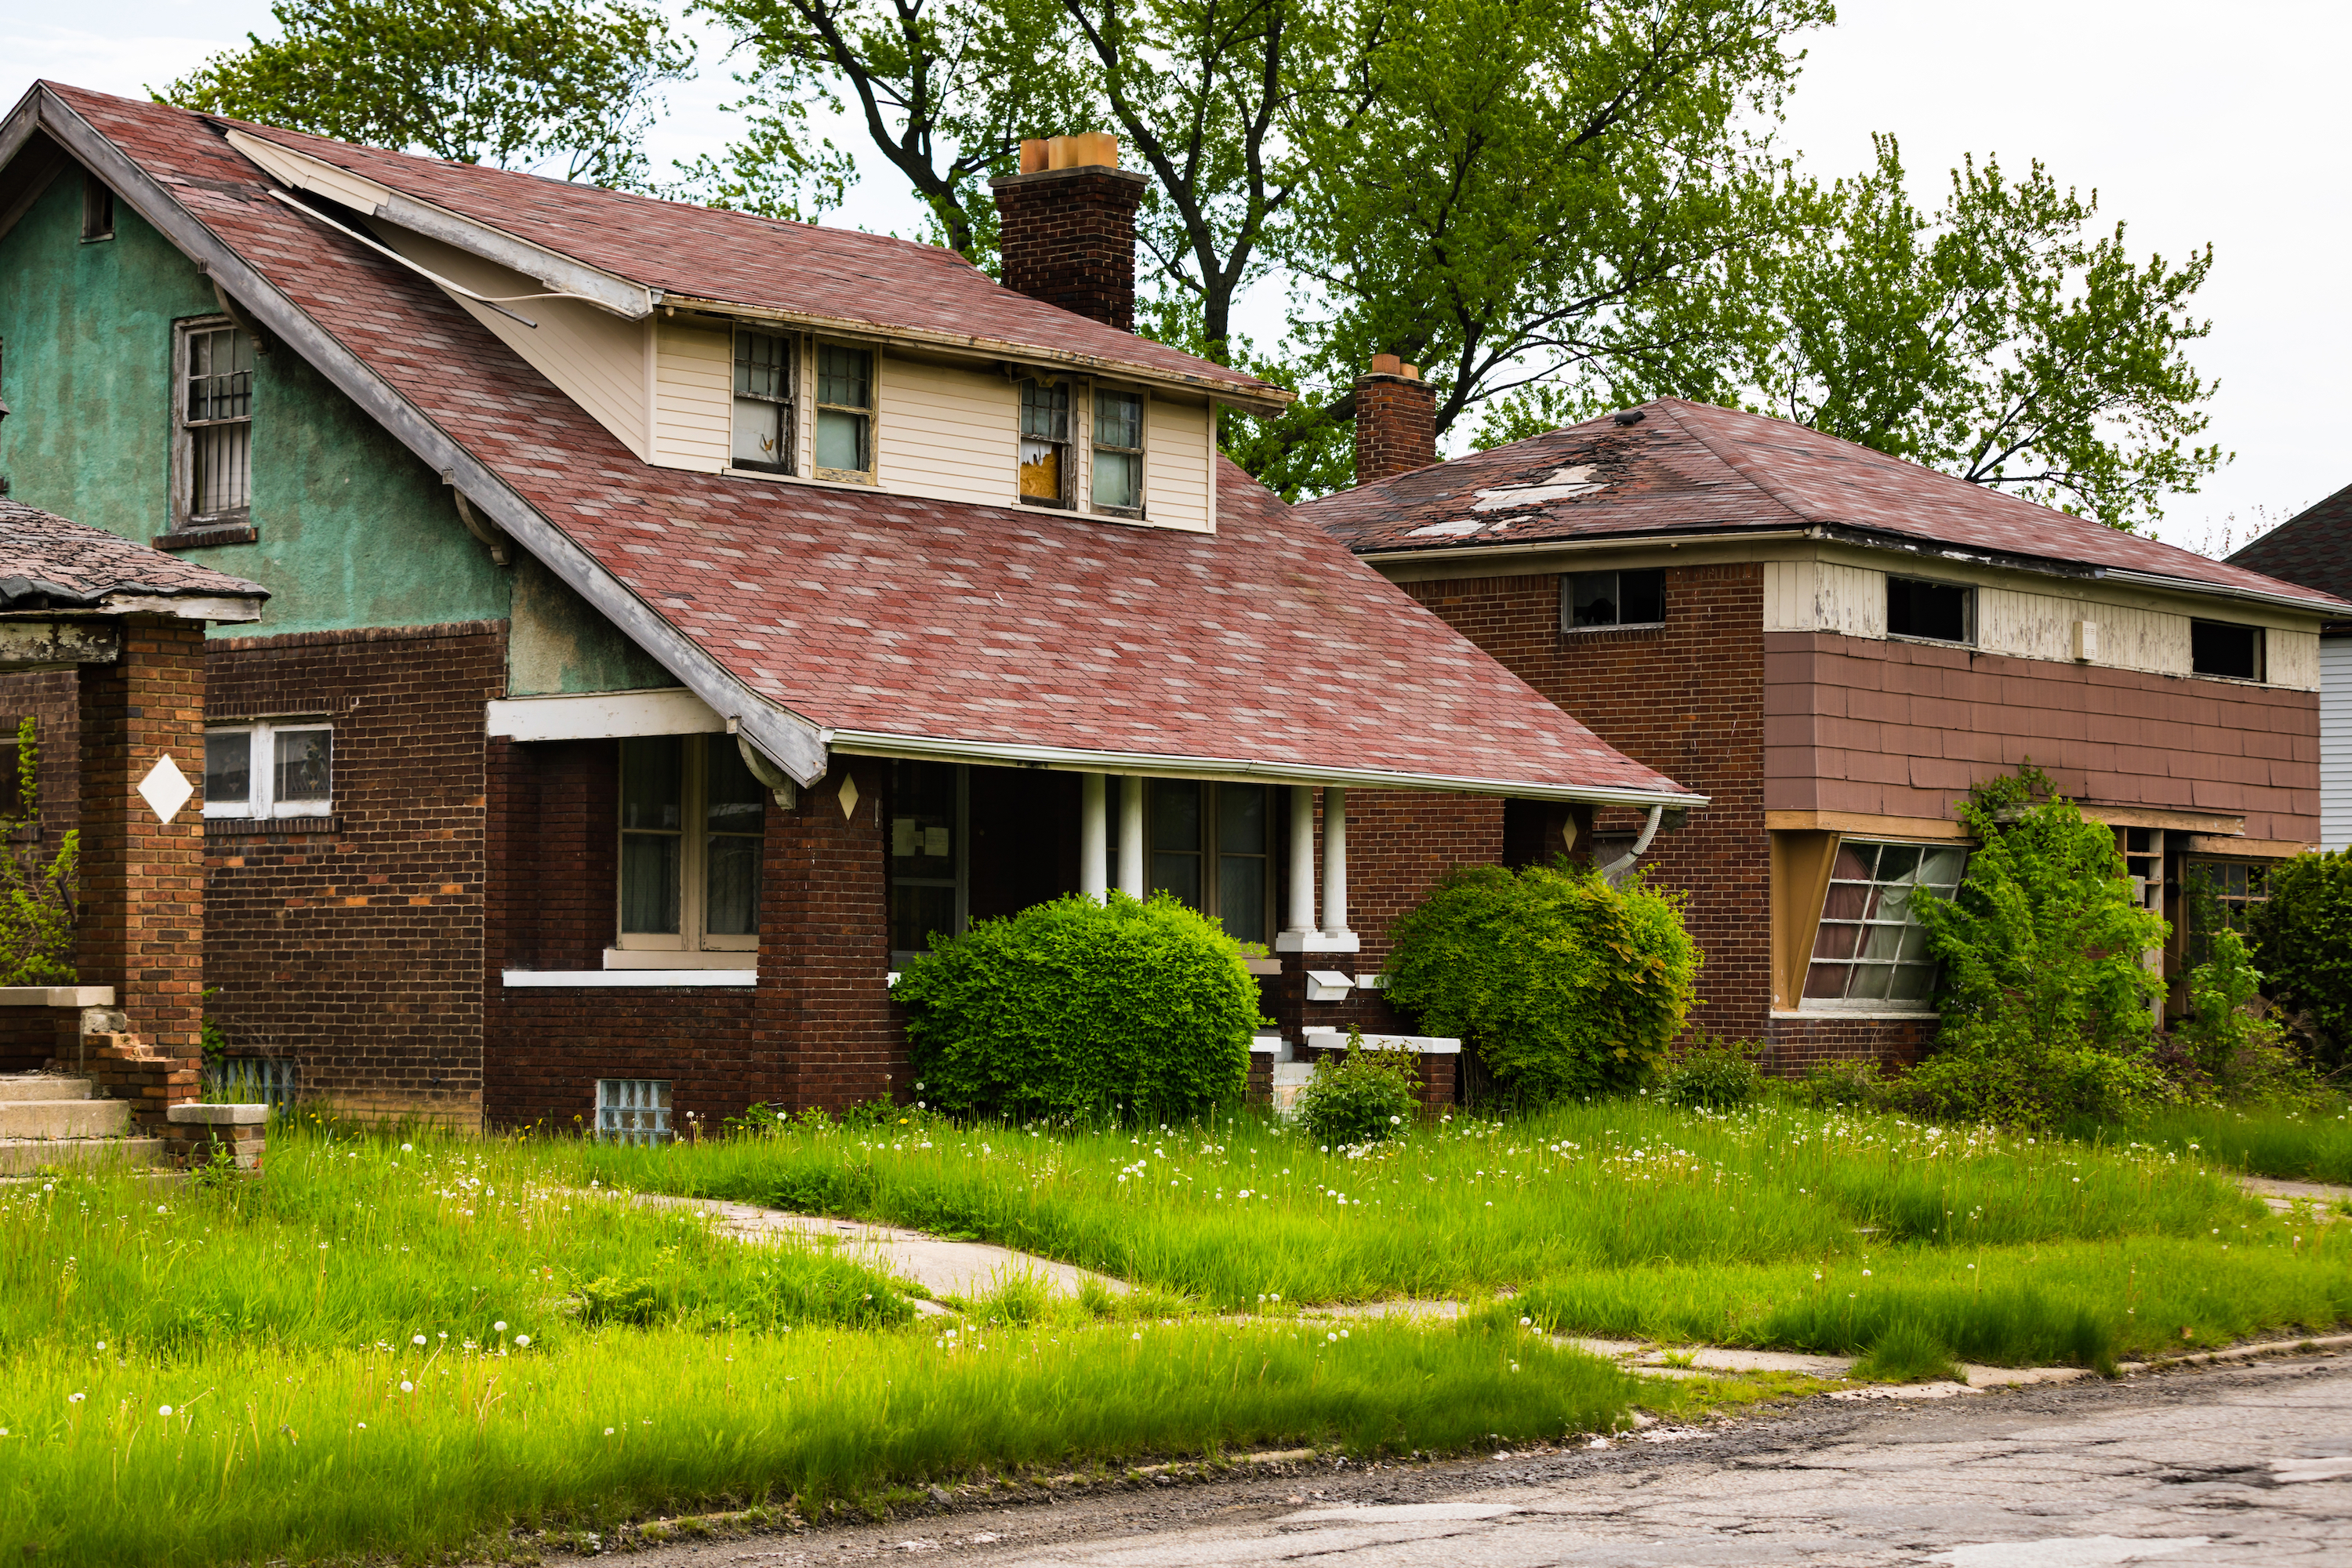 Two abandoned homes. They both have missing or boarded up windows and uncut front yards.